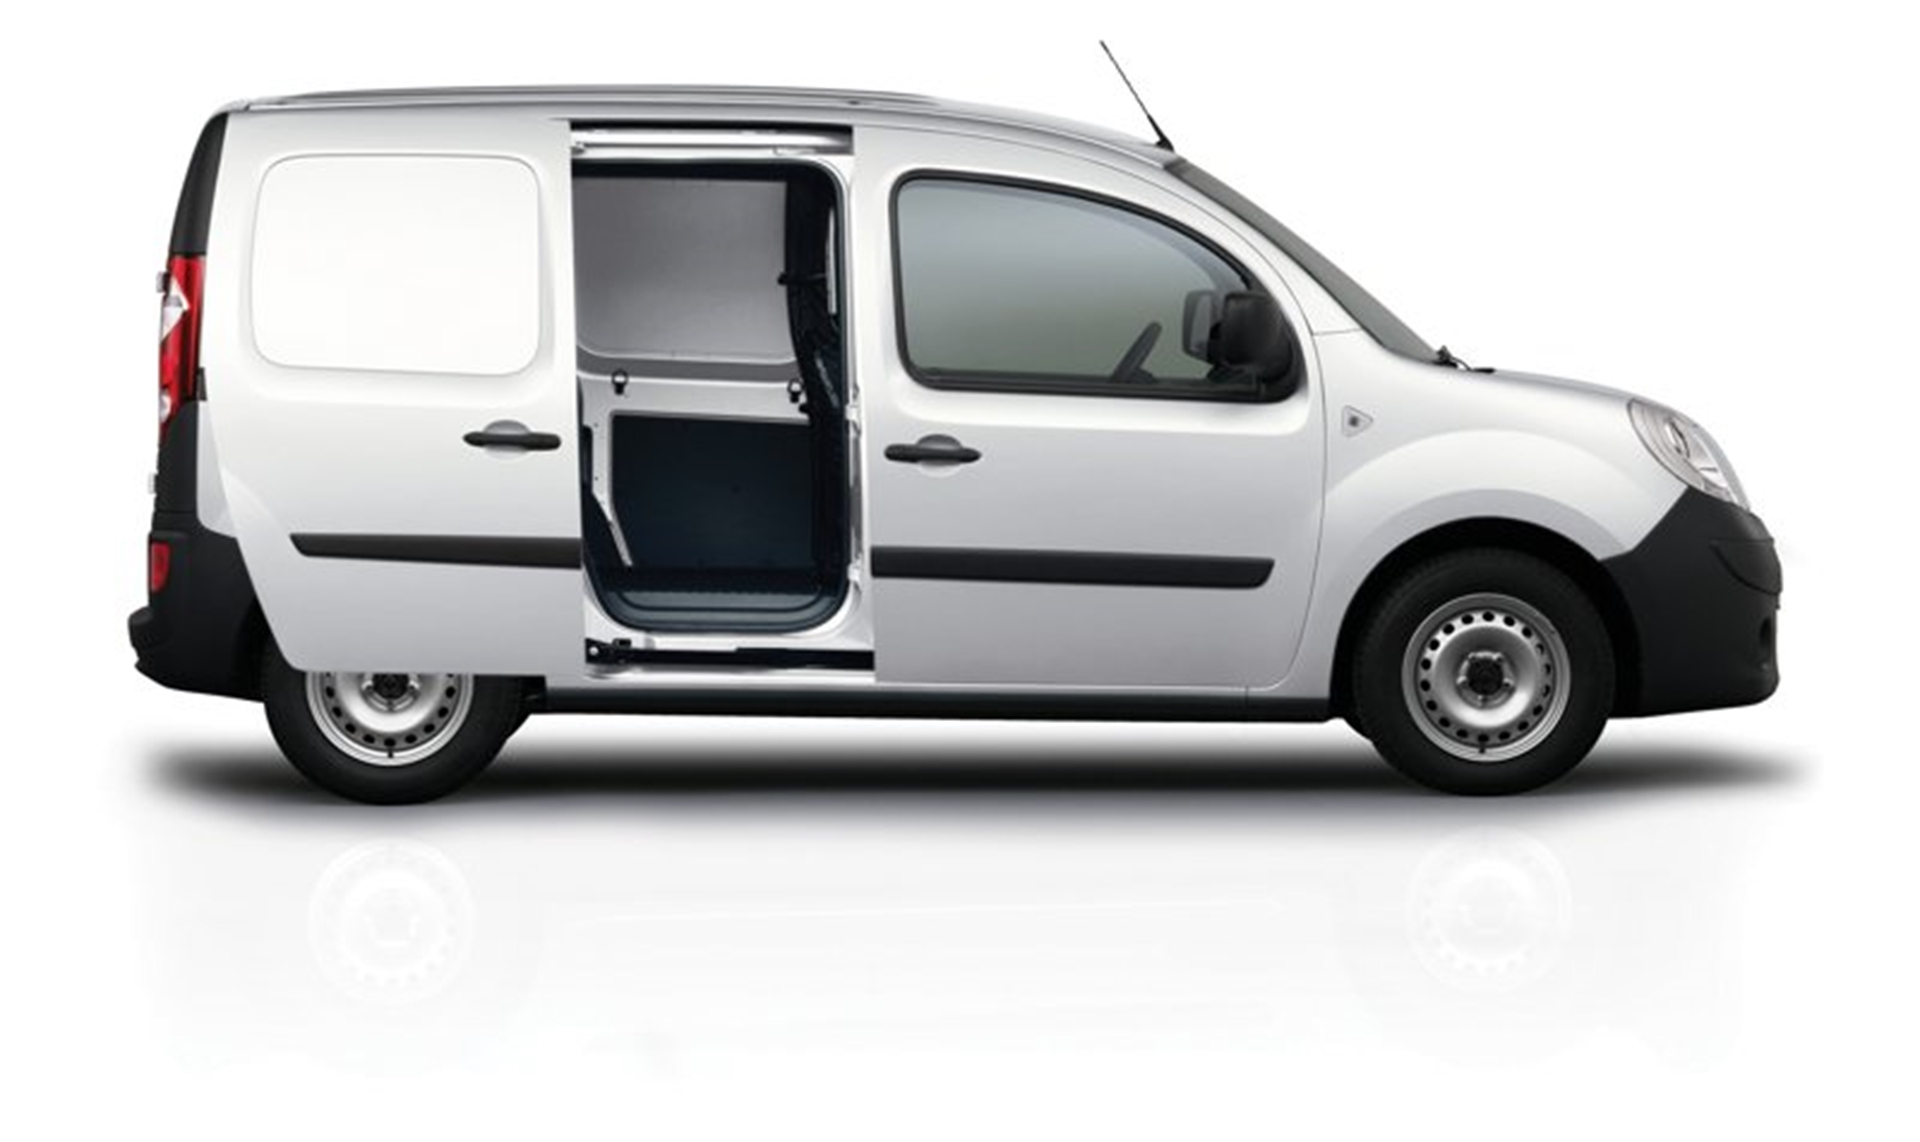 Renault Kangoo Side View